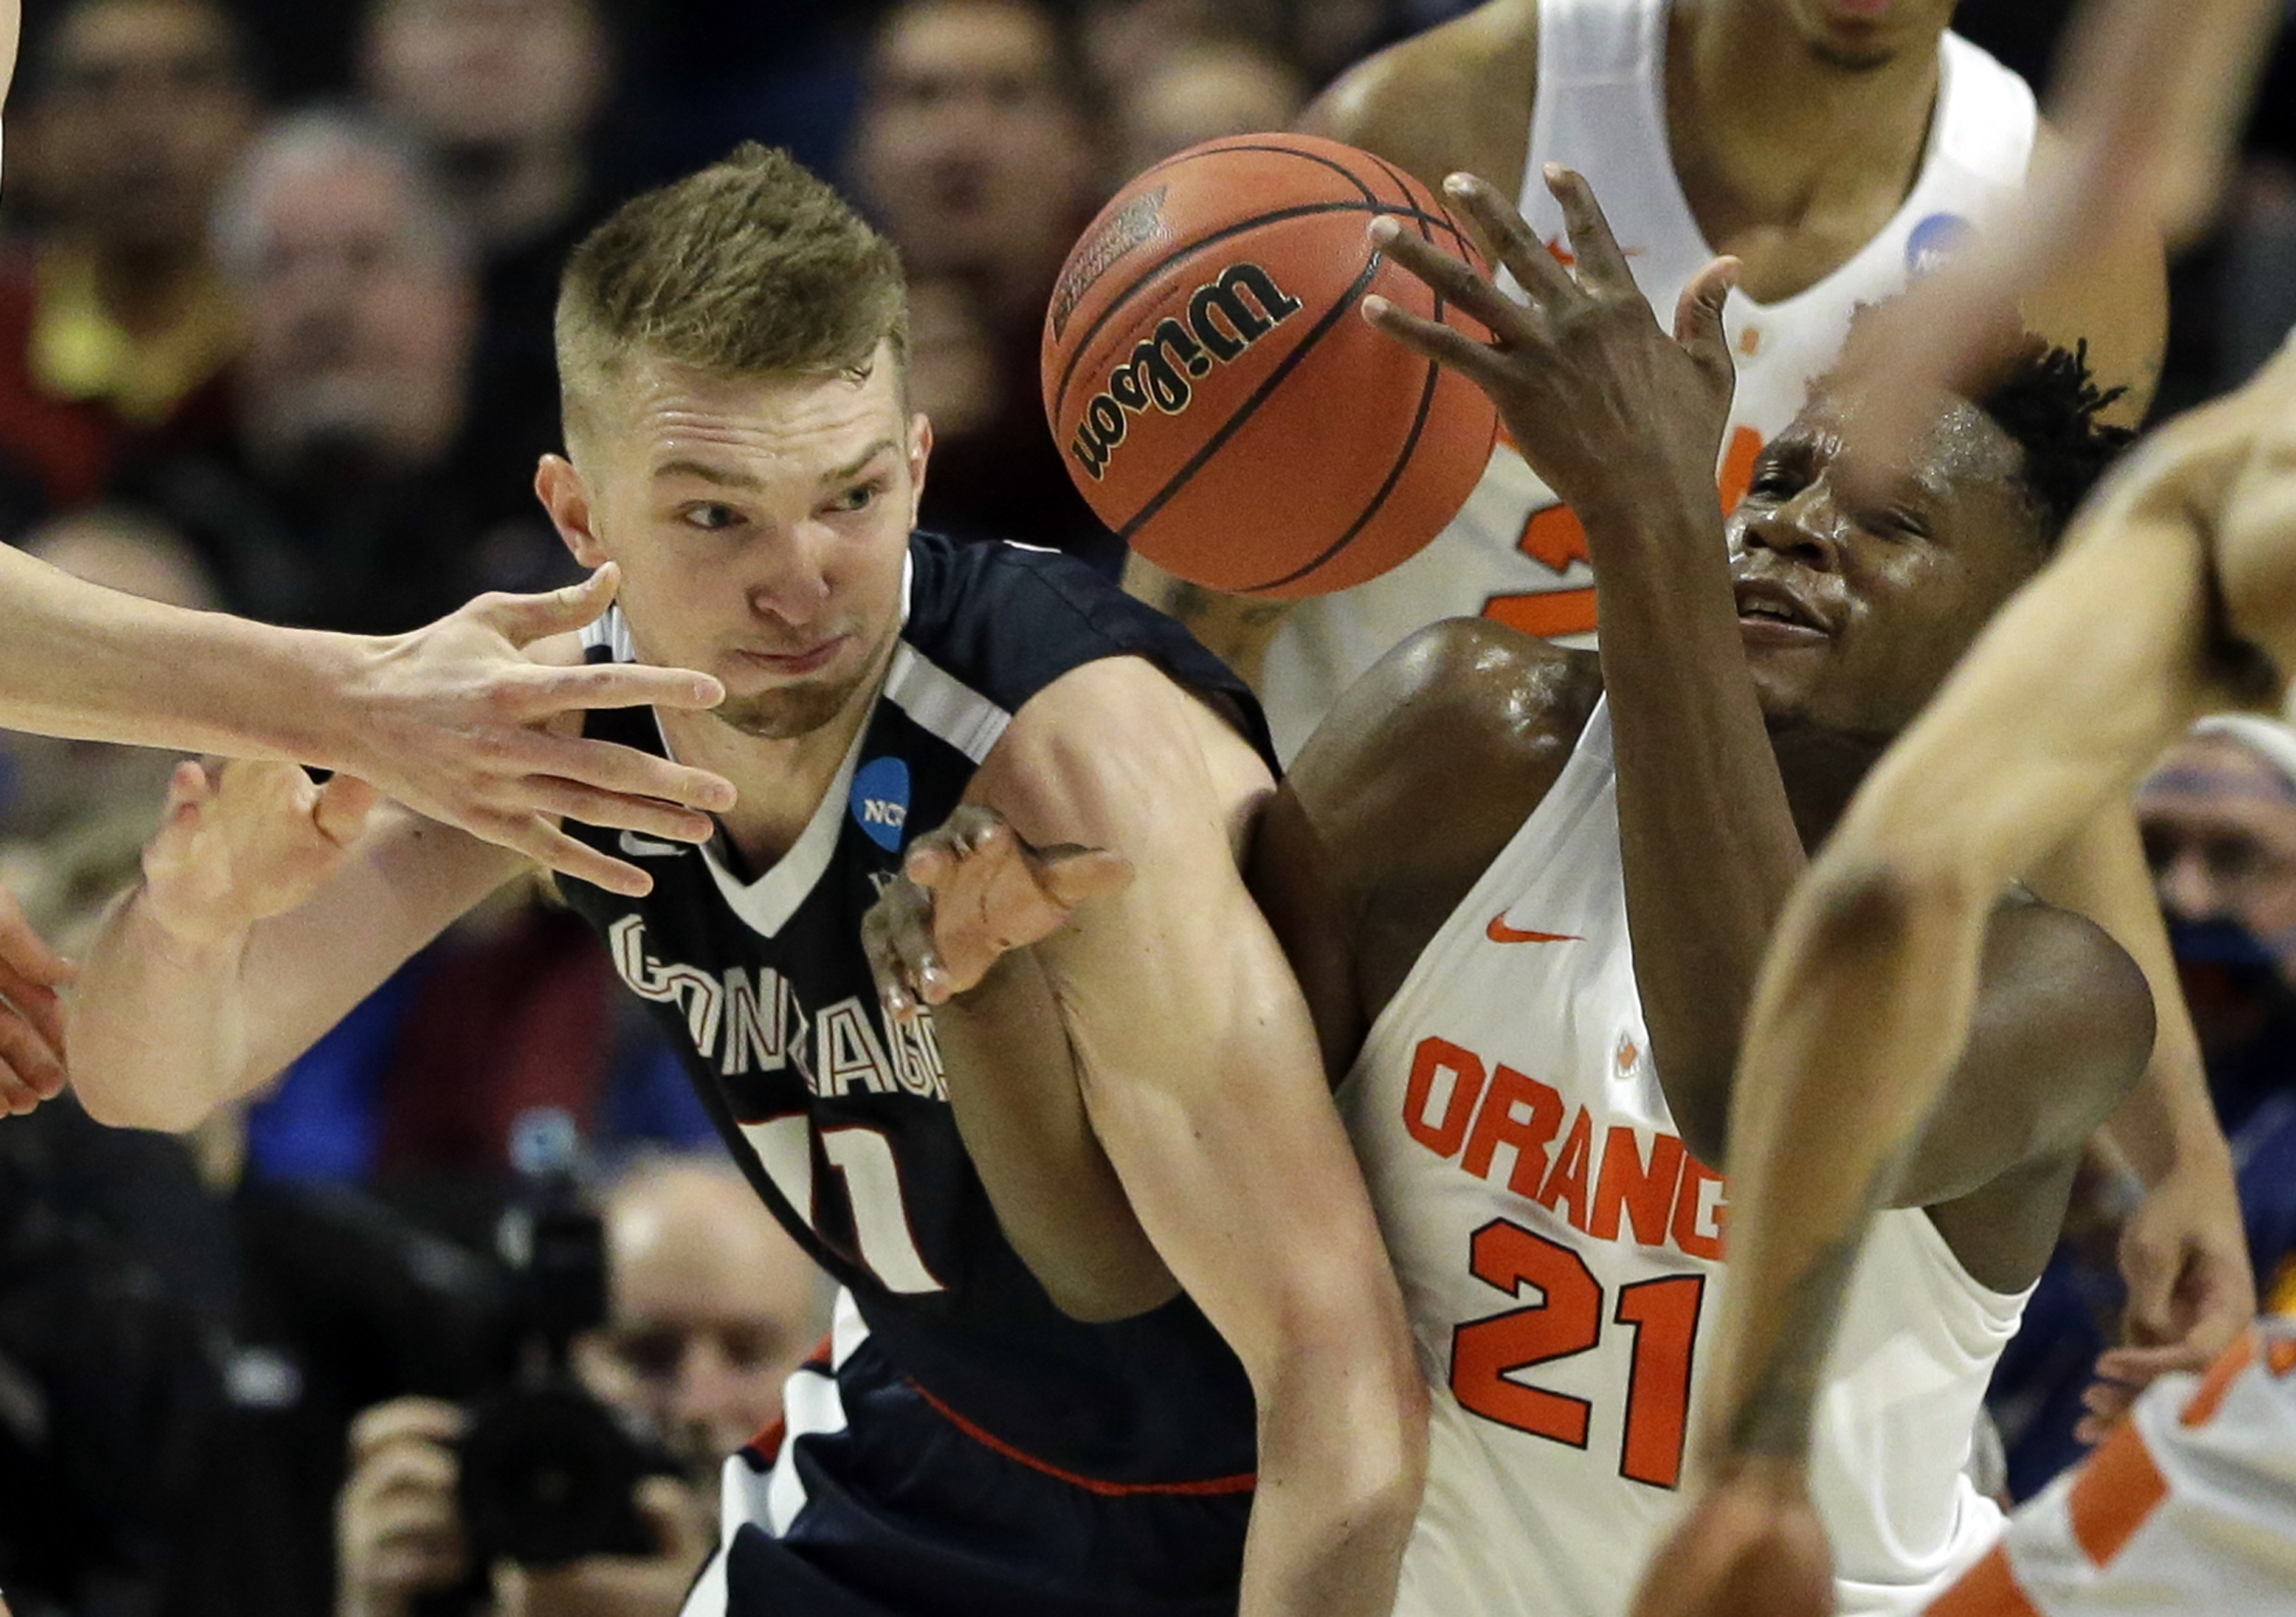 Gonzaga's Domantas Sabonis (11) and Syracuse's Tyler Roberson (21) battle for a loose ball during the second half of a college basketball game in the regional semifinals of the NCAA Tournament, Friday, March 25, 2016, in Chicago. (AP Photo/Nam Y. Huh)